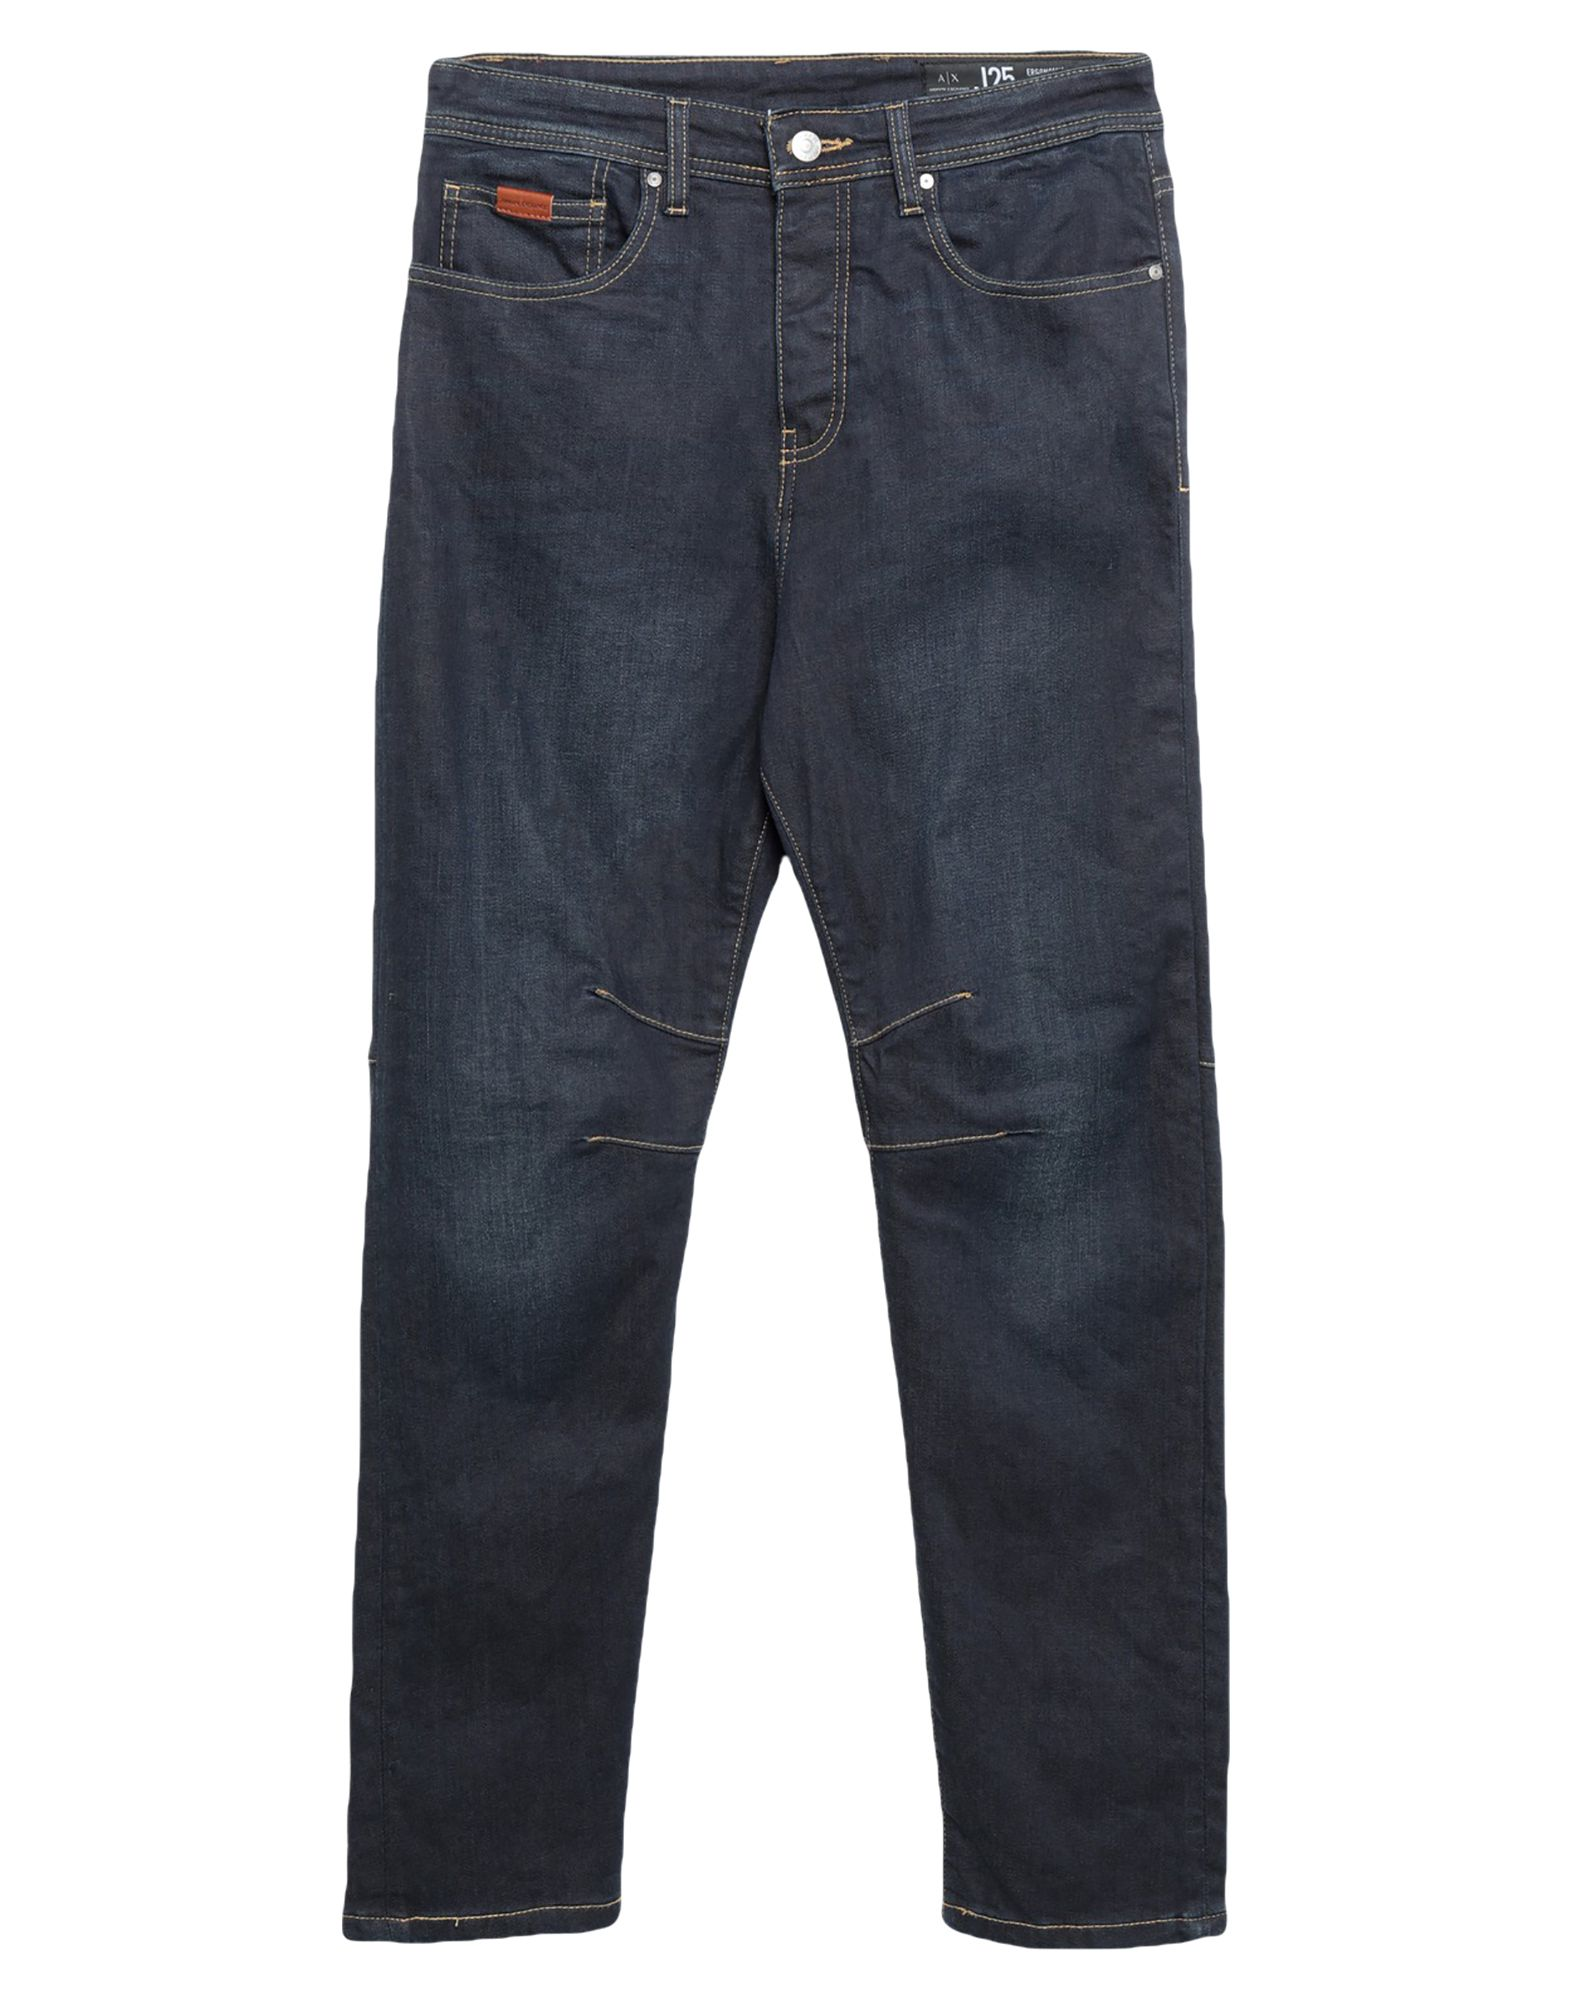 ARMANI EXCHANGE Denim pants - Item 42764590